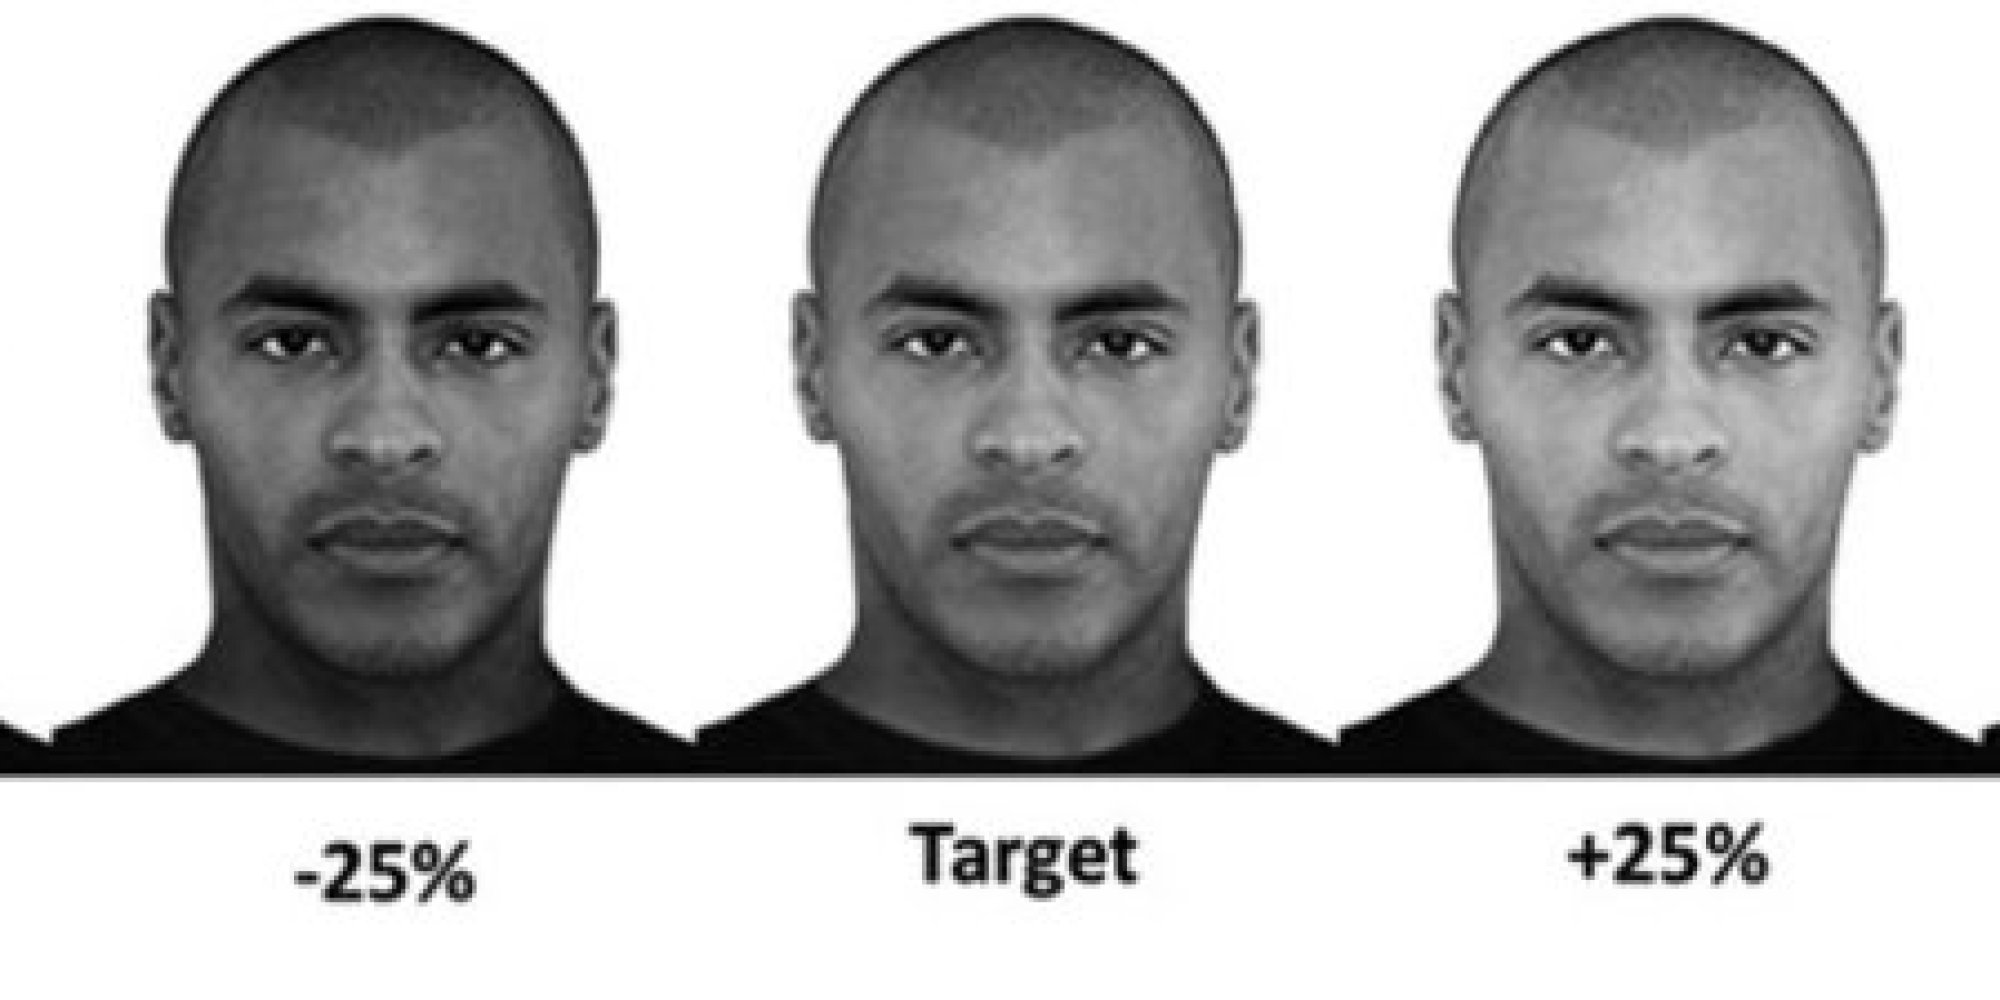 Different facial features of black and white people